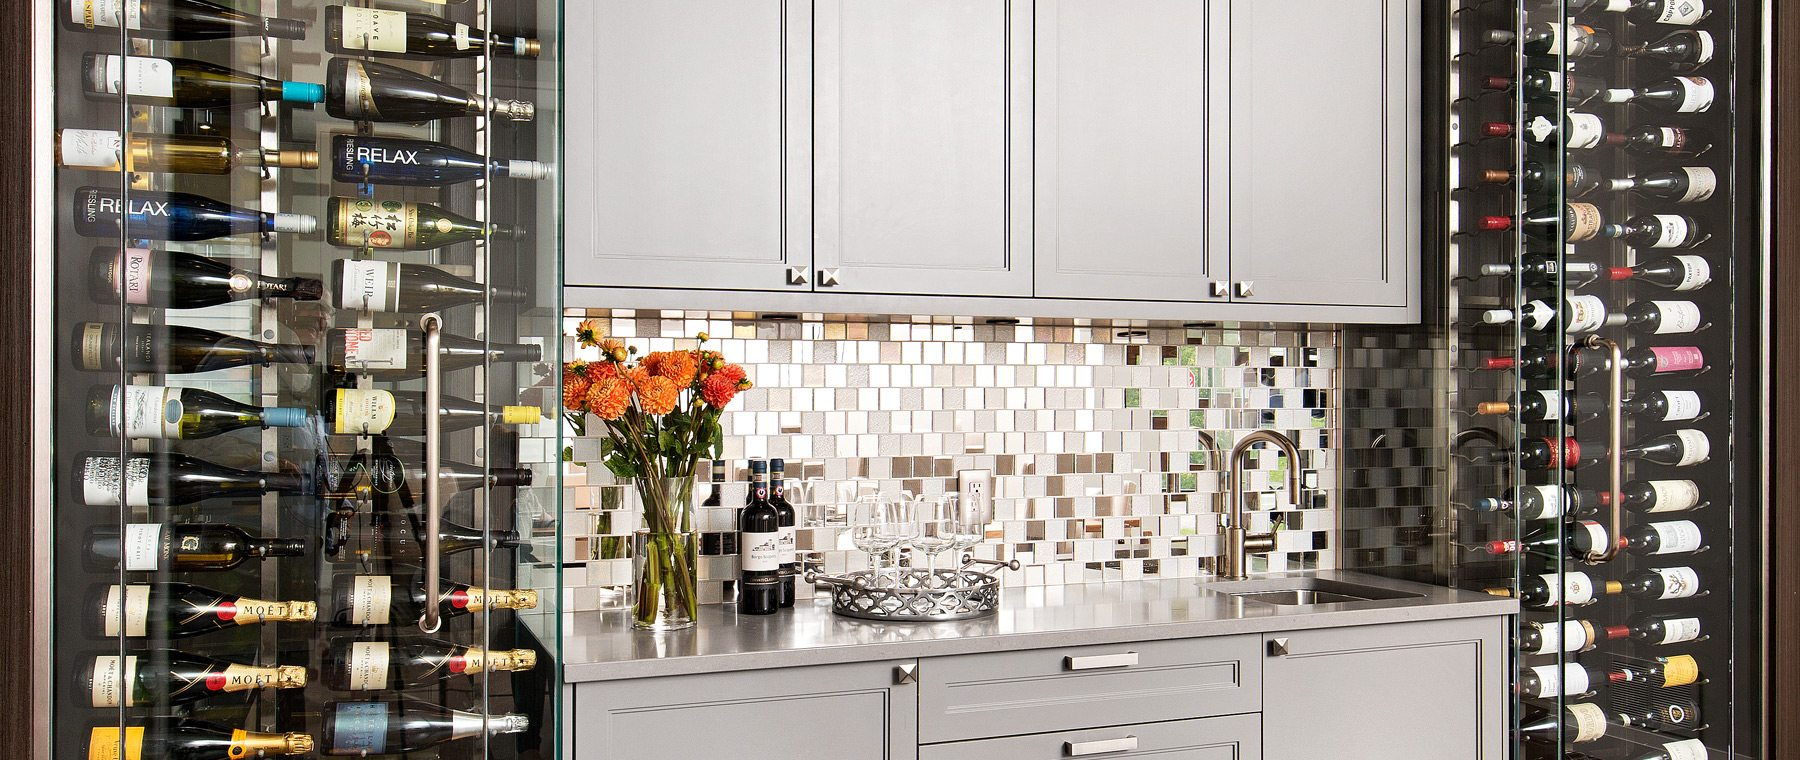 A Westboro wine cellar — Sophistication in shades of silver & grey